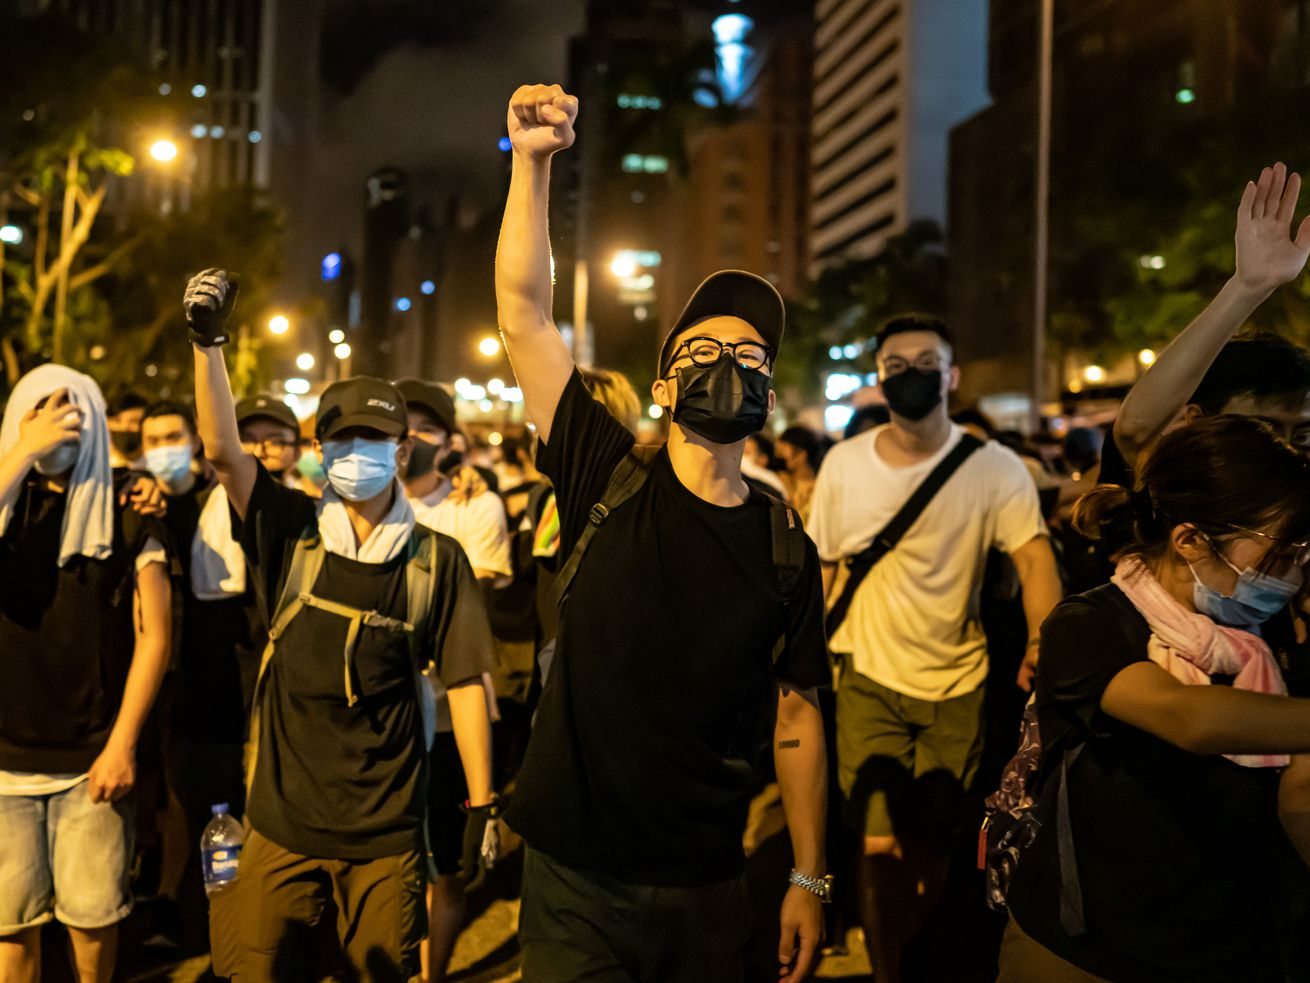 People protest an extradition law in Hong Kong on June 10, 2019, part of a larger fight for democracy in China.